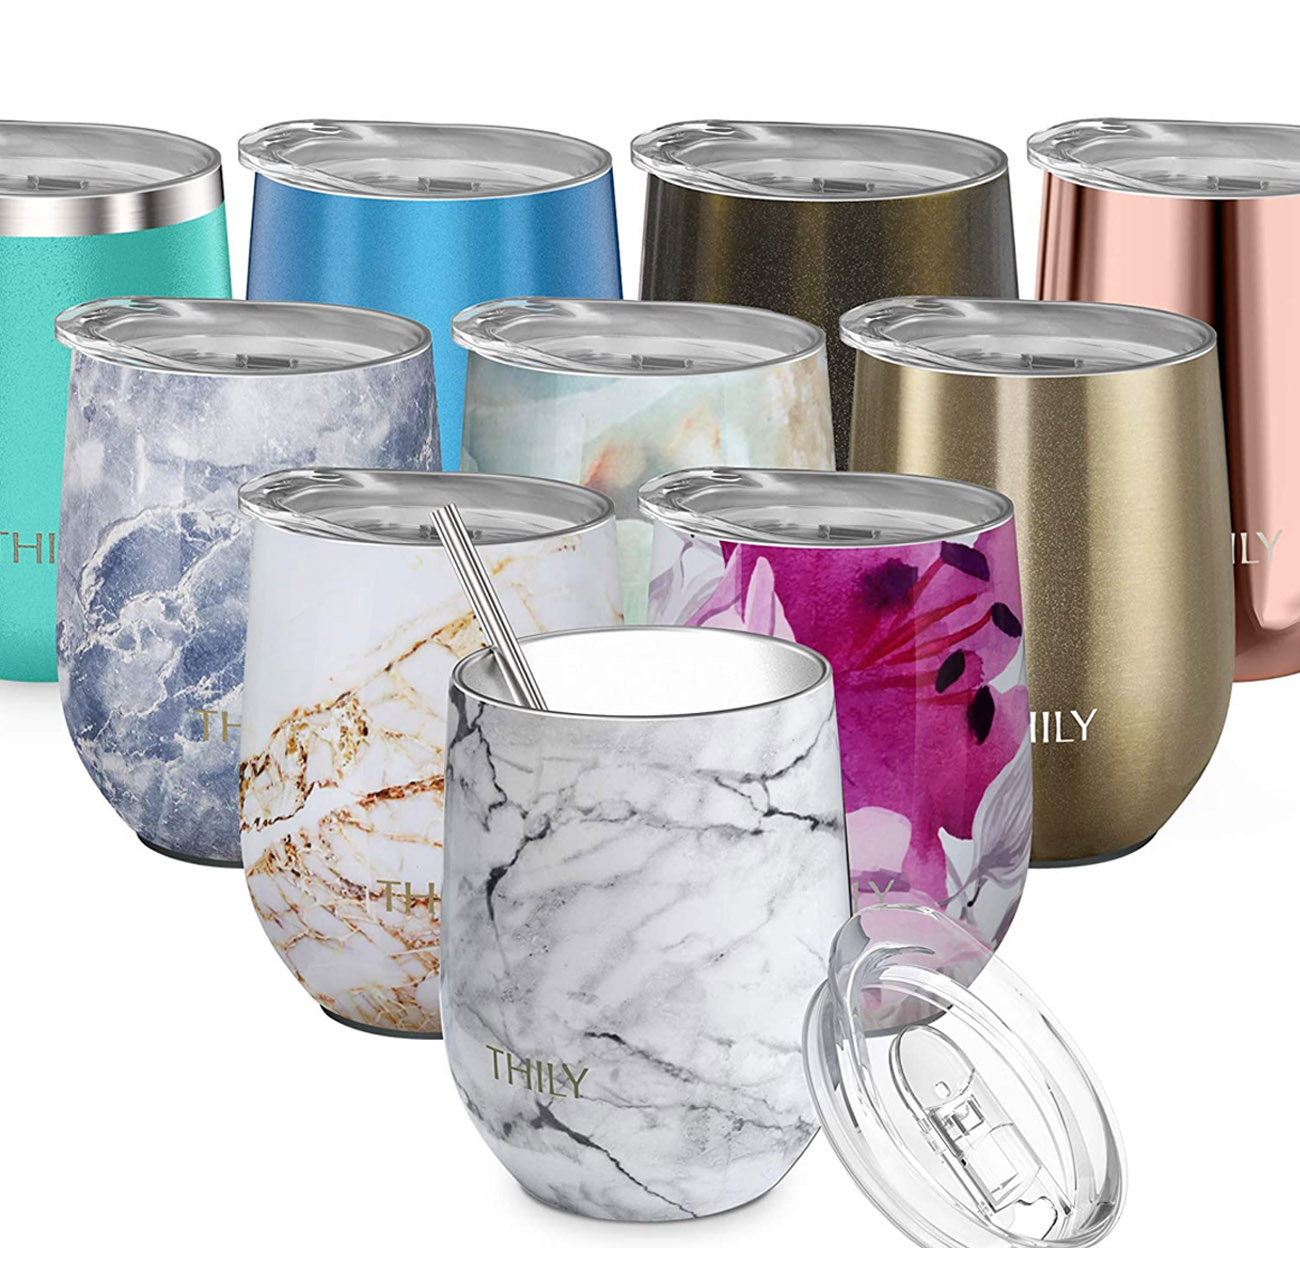 wine tumblers are amazing for a bachelorette party and can be used at once during it for having wine